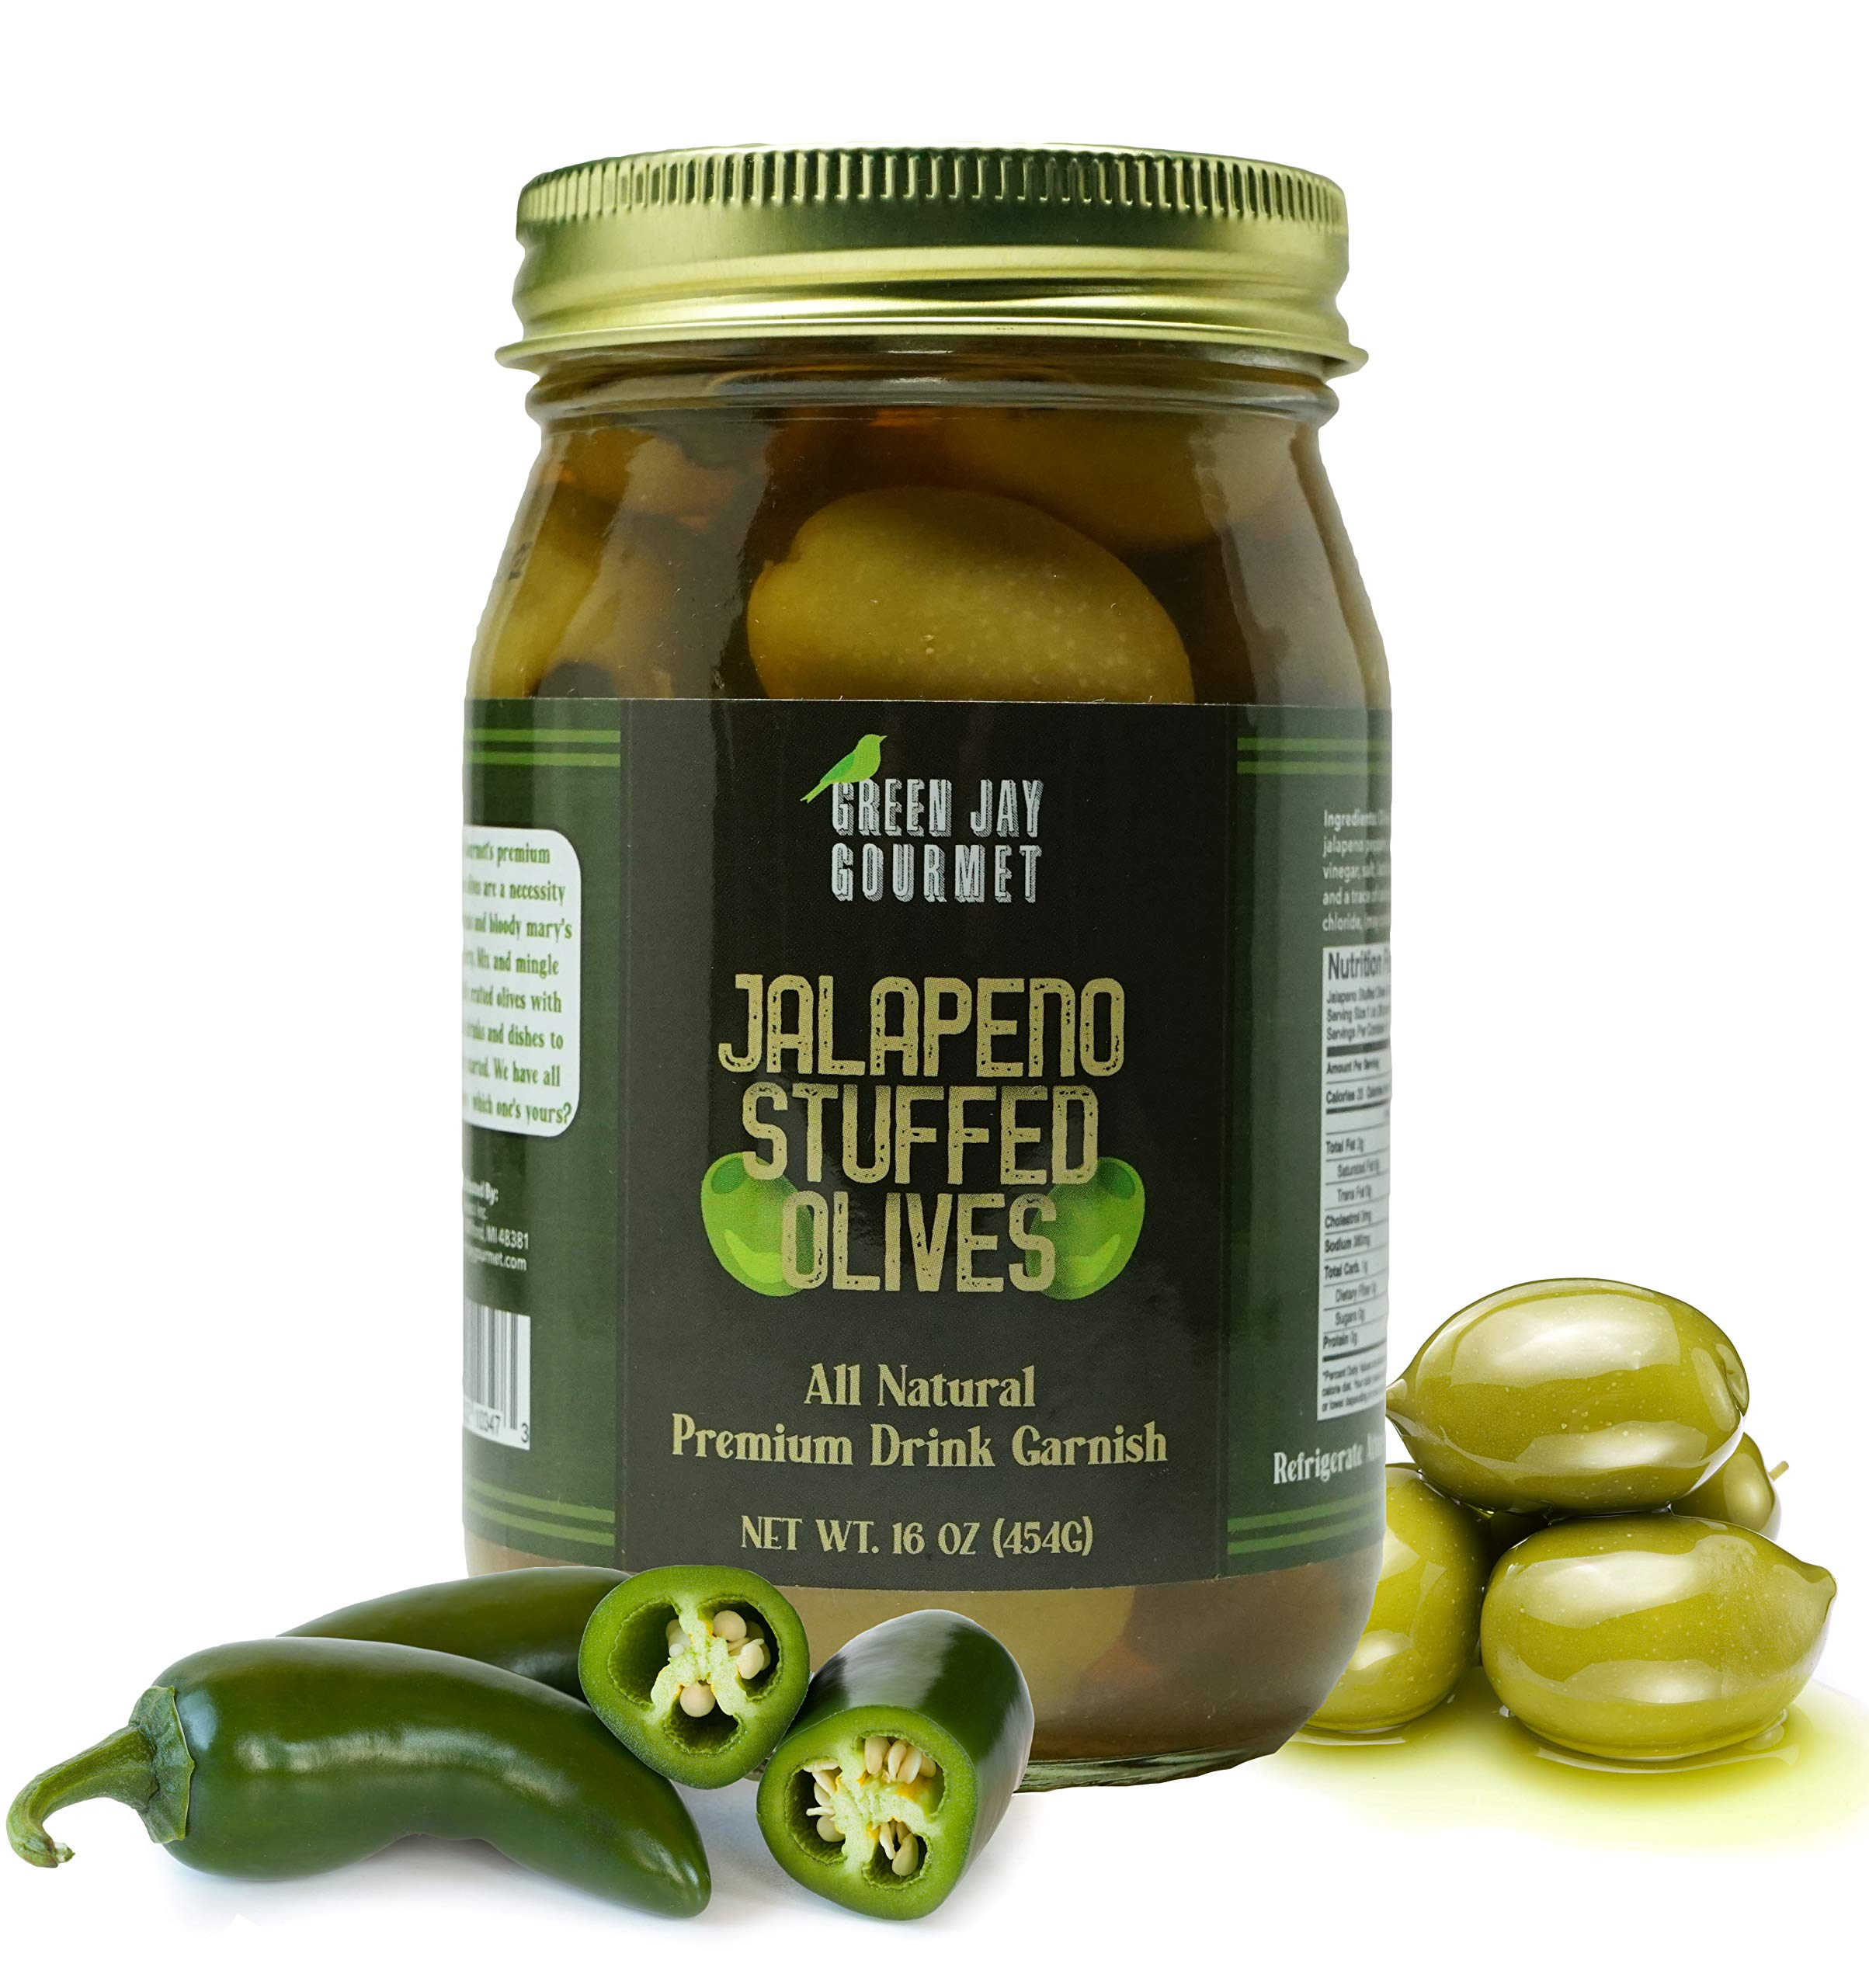 Green Jay Gourmet Jalapeno Stuffed Olives – Stuffed Green Olives for Cocktail Garnish & Cheese Board Recipes – Dirty Martini Olives & Cocktail Olives – Gourmet Olives – All Natural – Large – 16 Ounces